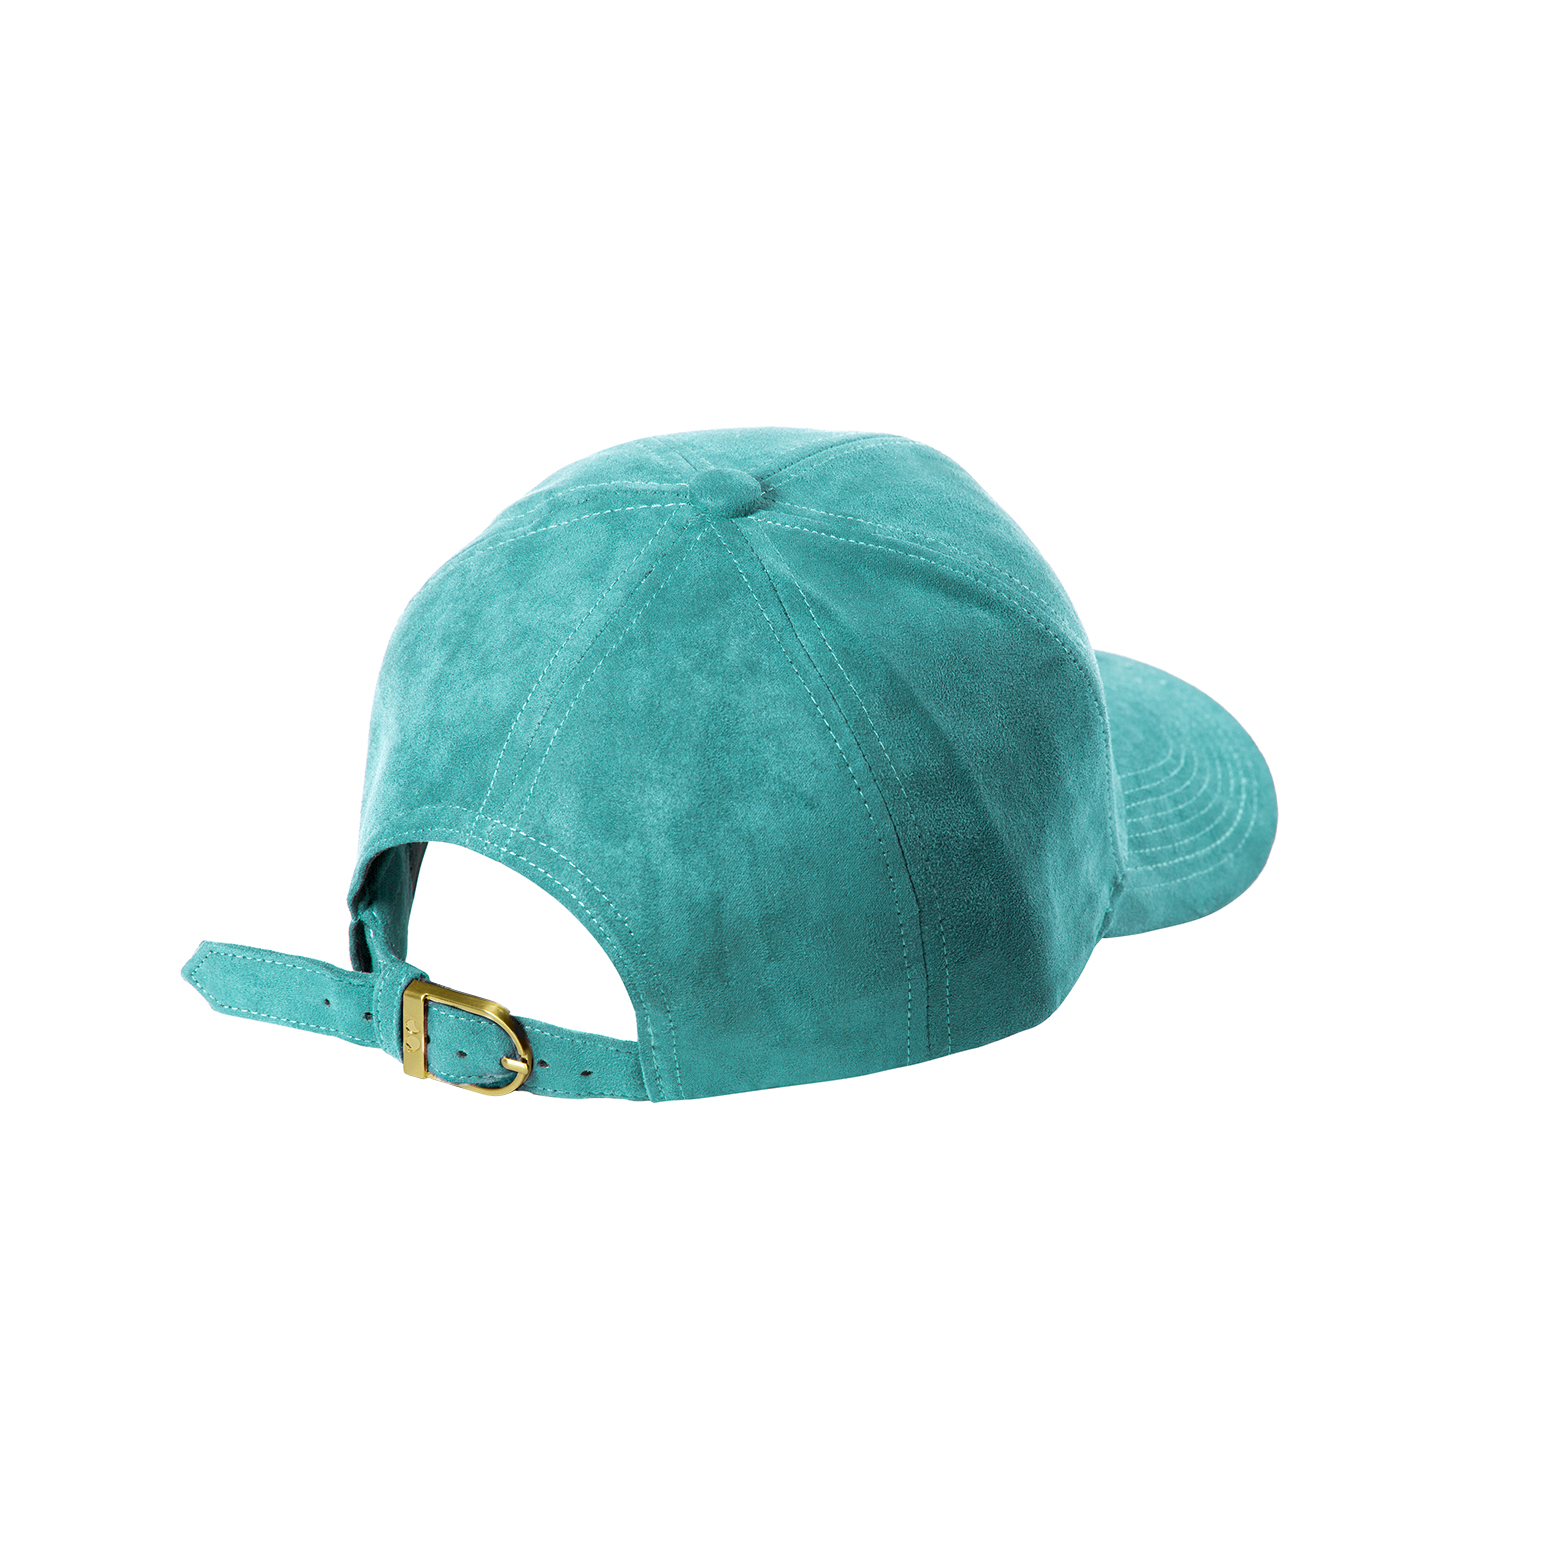 BASEBALL CAP TURQUOISE SUEDE GOLD BACK SIDE